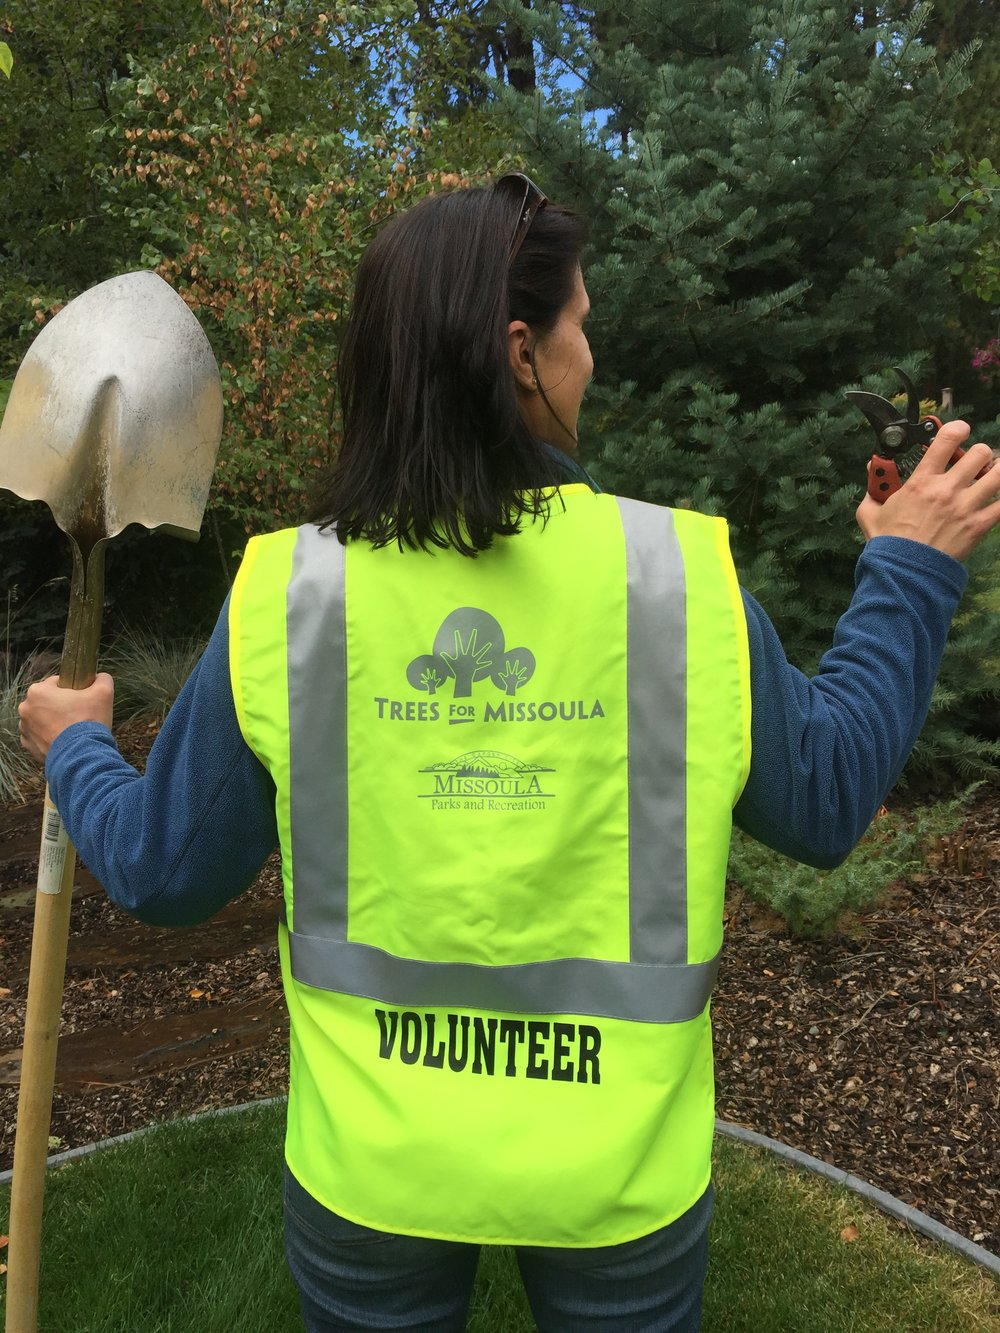 VolunteerVest.jpg